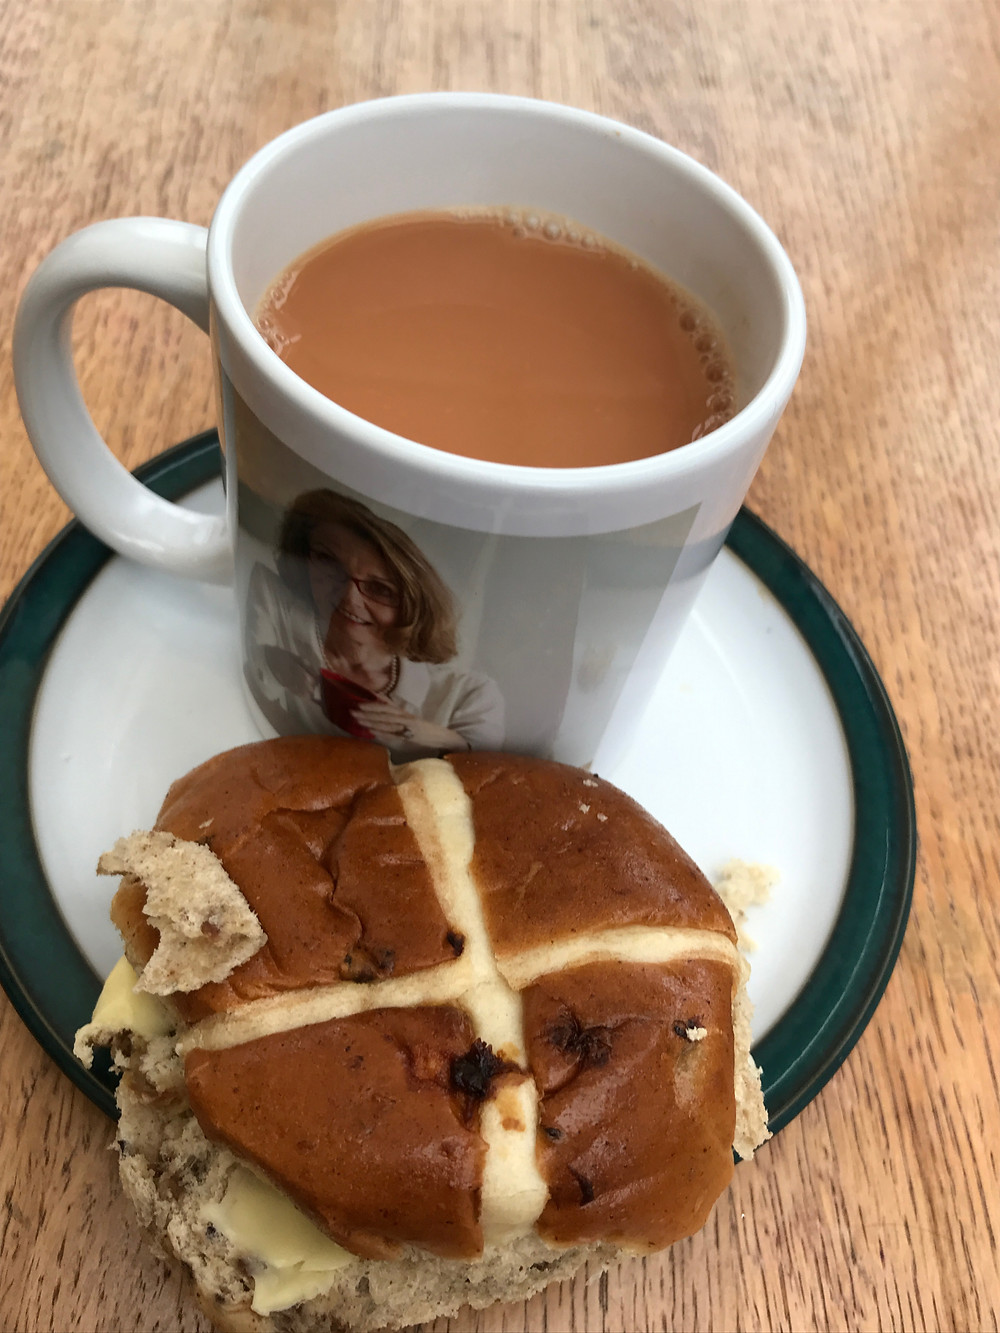 Cup of tea and a hot cross bun.